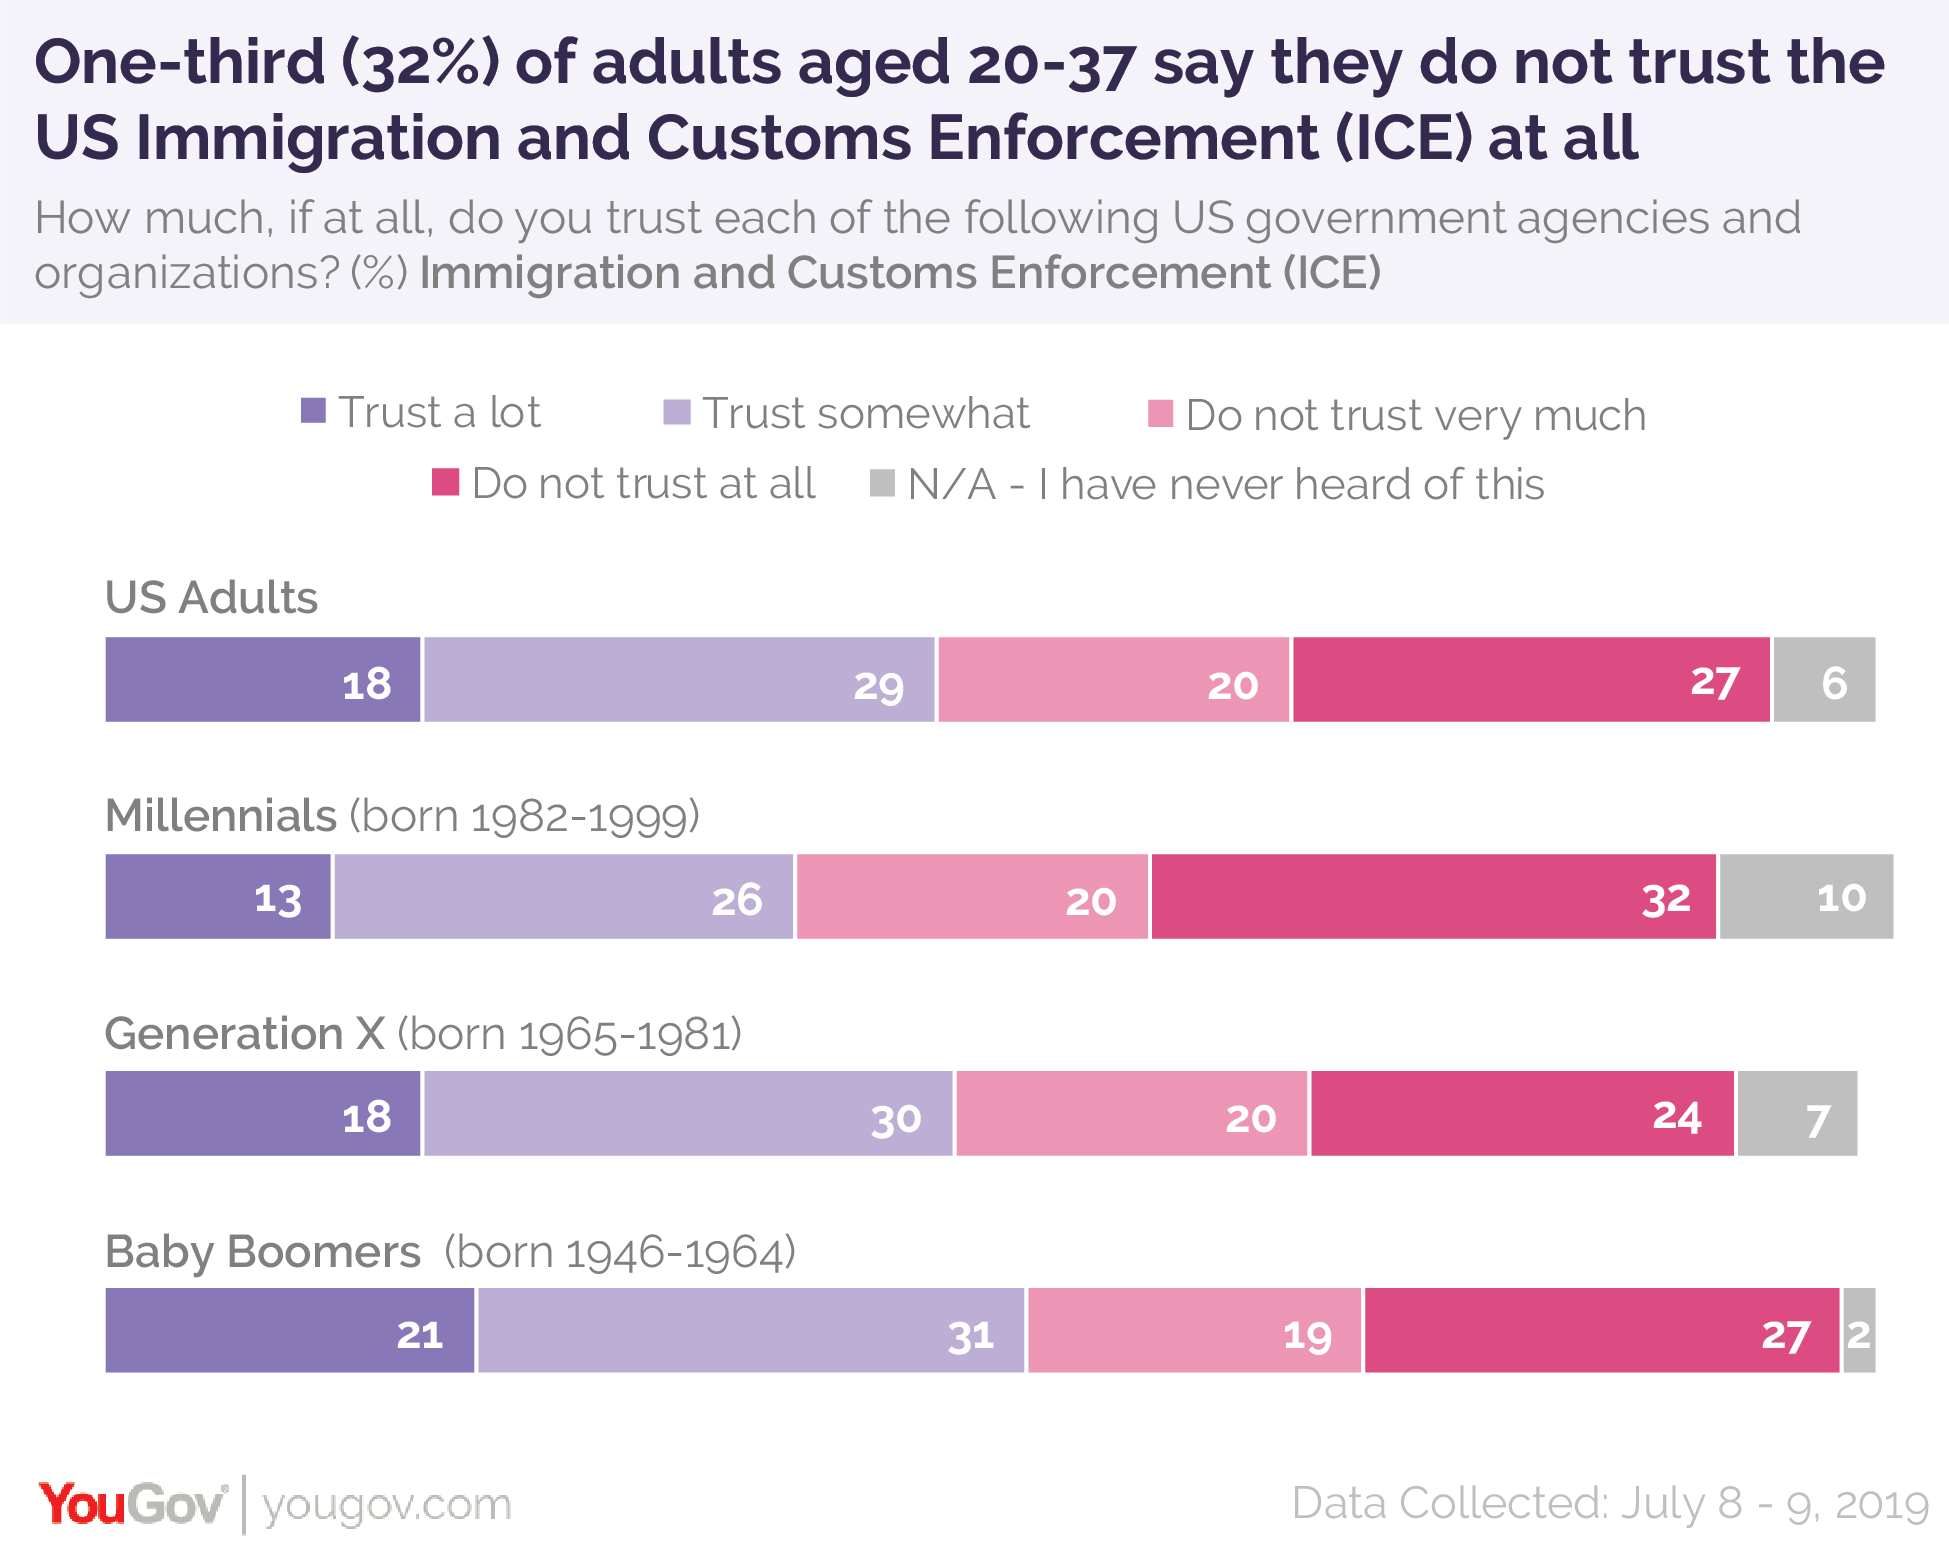 One-third of adults ages 20-37 say they do not trust the US Immigration and Customs Enforcement (ICE) at all